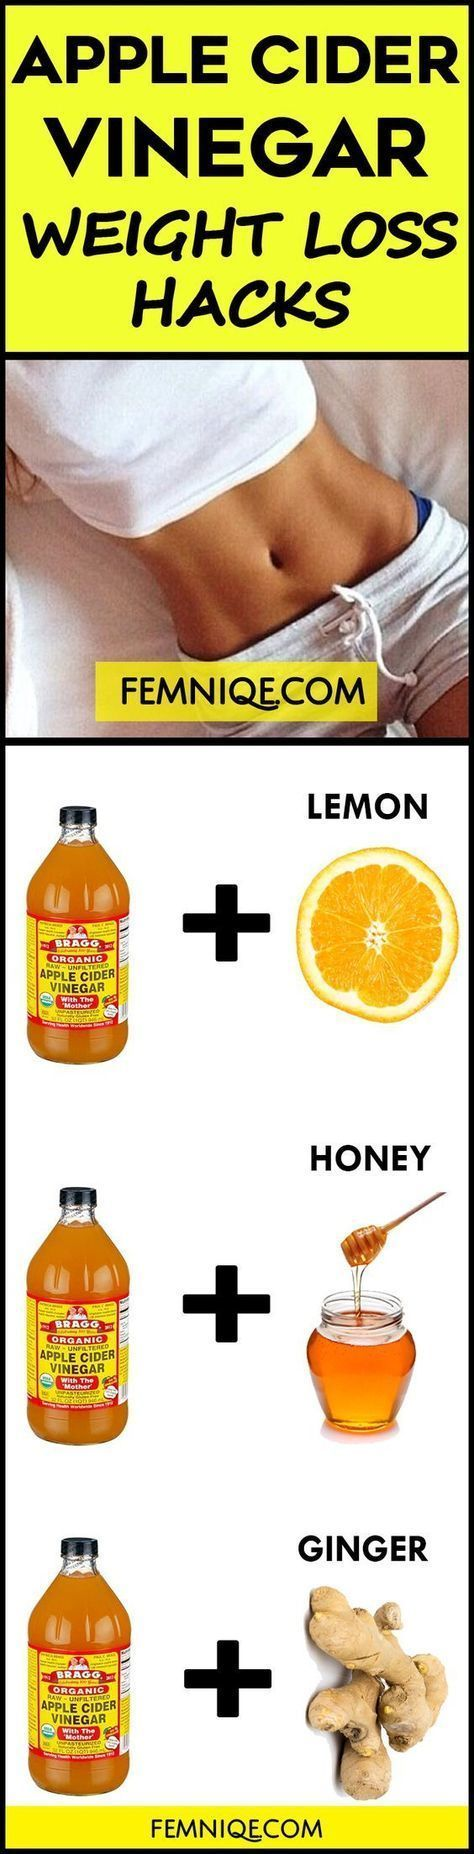 Why Is Apple Cider Vinegar And Honey Good To Drink